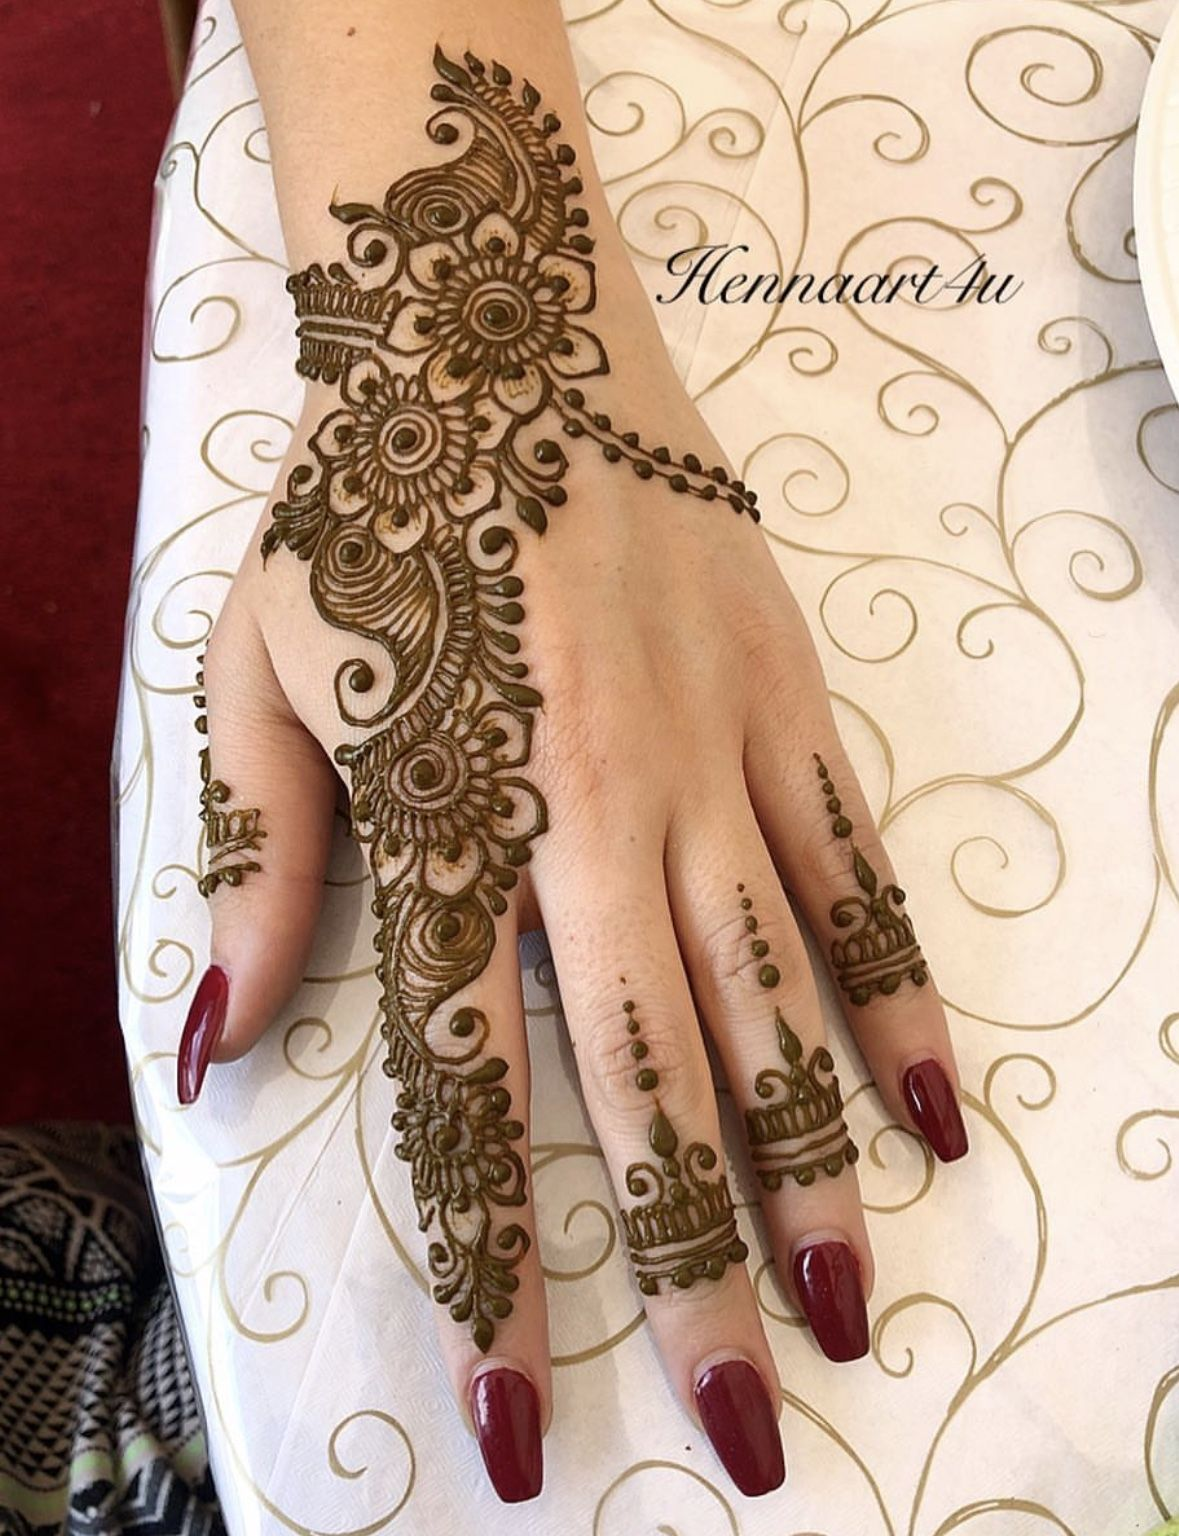 Pin By Khima Thapa On Henna Easy Henna Art Designs Mehndi Design Images Henna Designs Hand